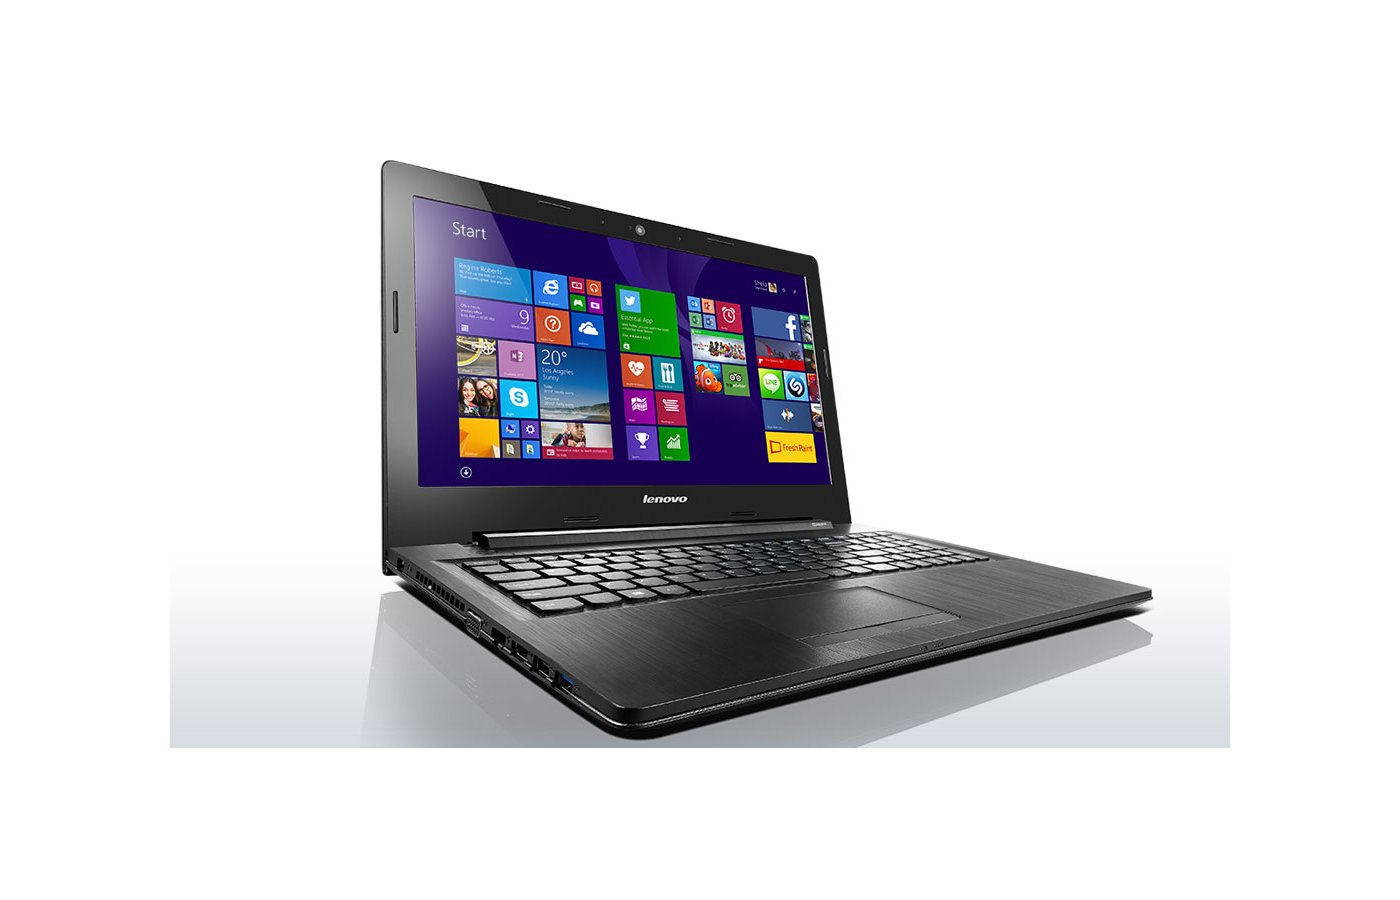 Ноутбук Lenovo IdeaPad 300-15IBR /80M30013RK/ intel N3700/4Gb/500Gb/DVDRW/GT920 1Gb/15.6/WiFi/BT/Win10